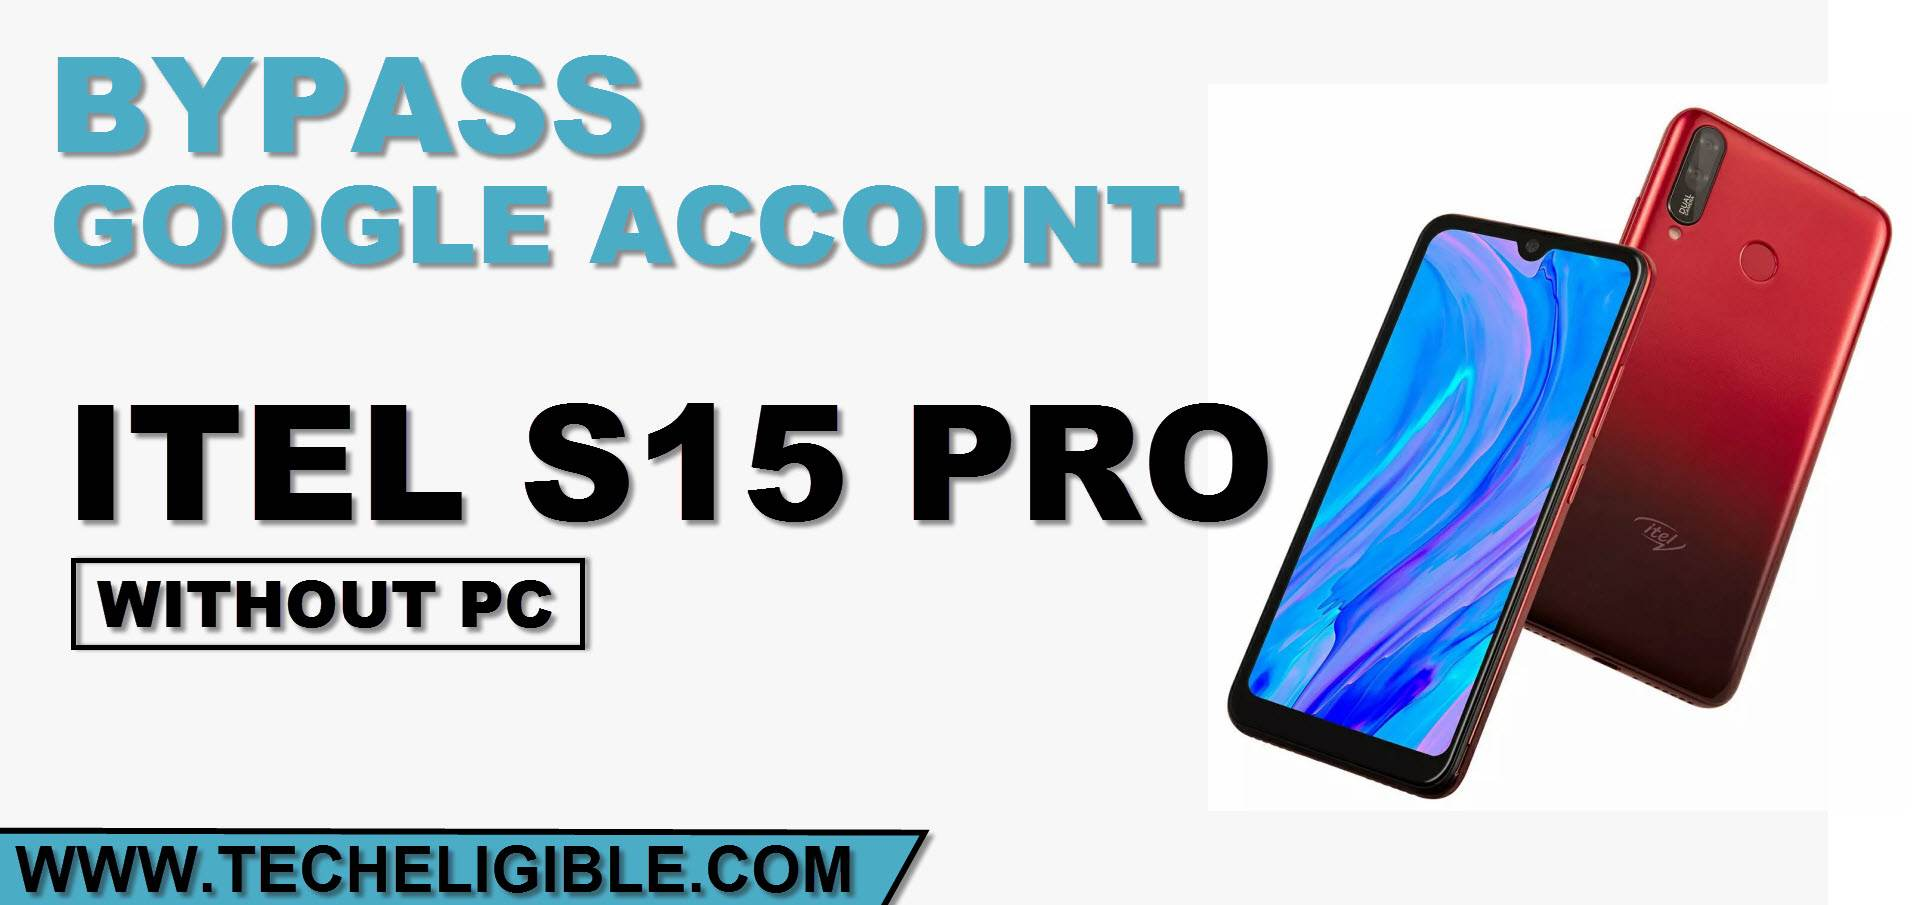 FRP Bypass Itel S15 Pro Without PC